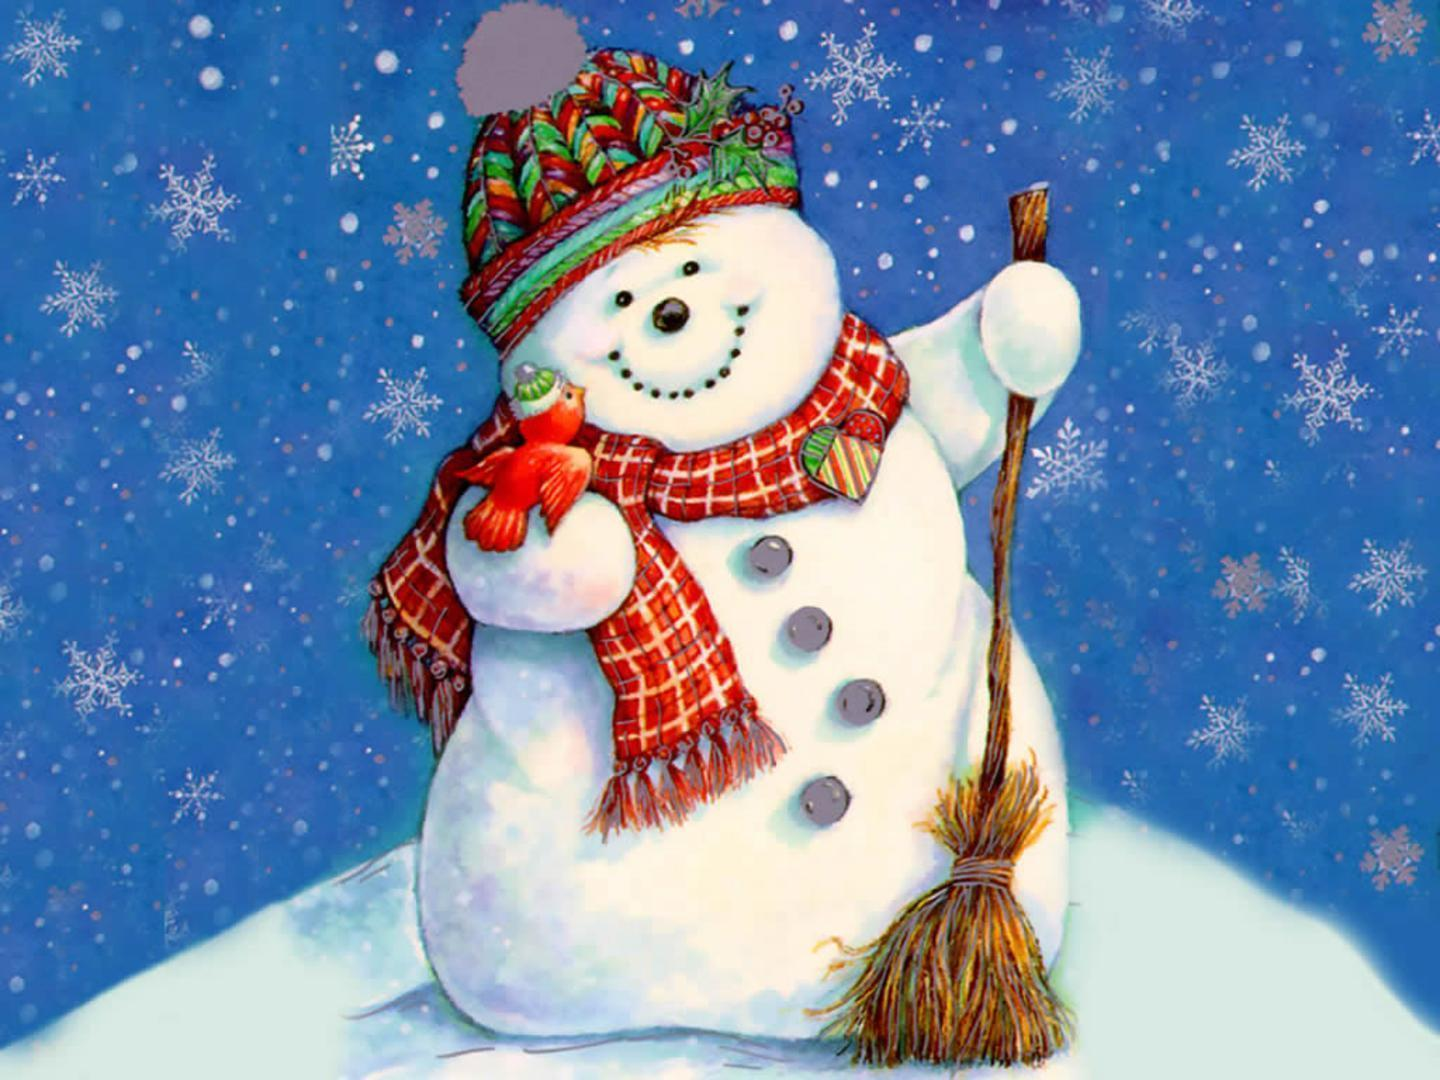 Snowman Wallpapers Top Free Snowman Backgrounds